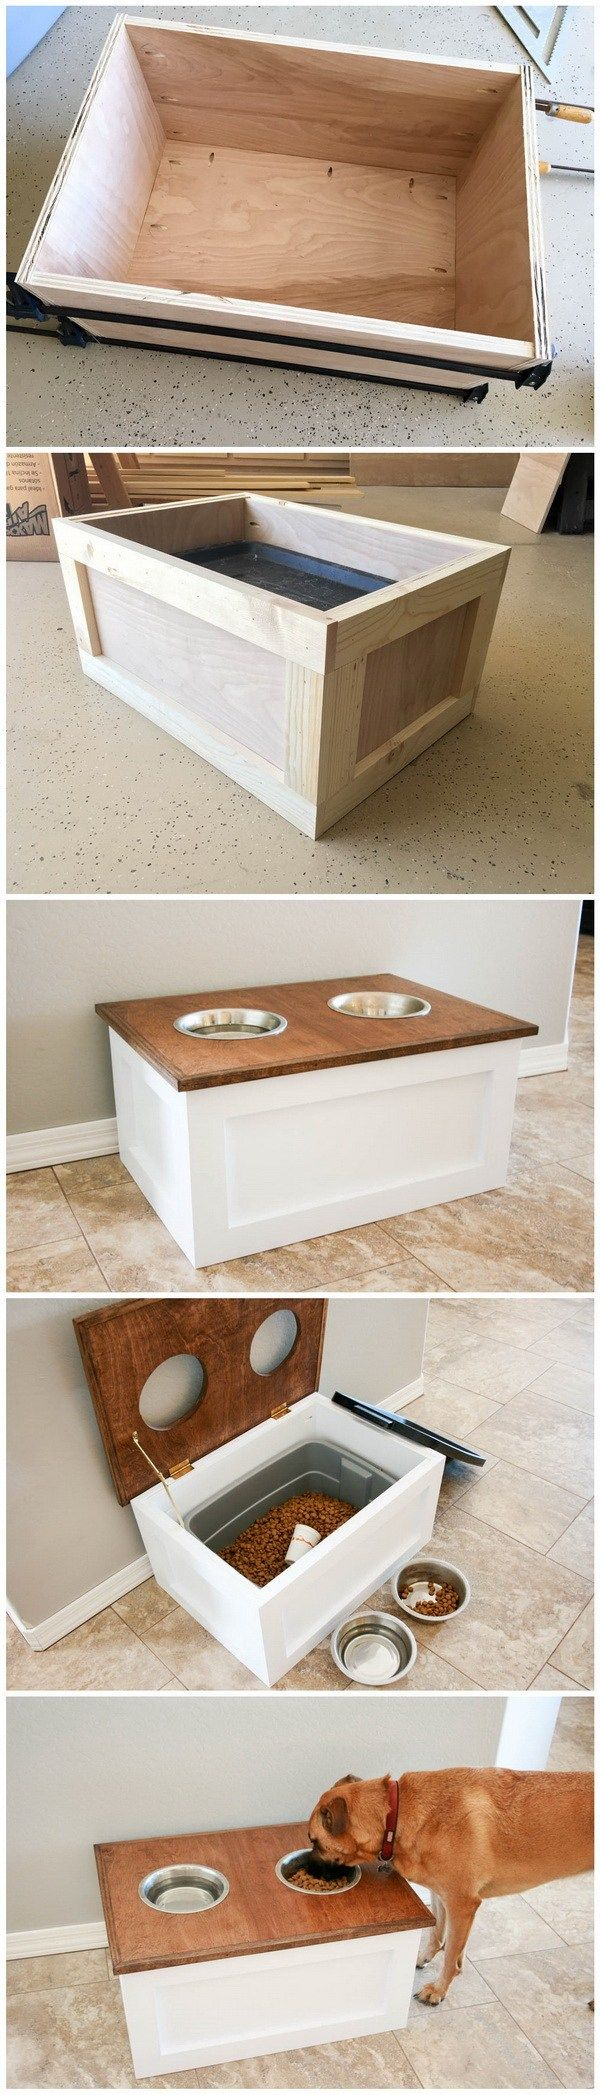 Diy Dog Food Station With Storage Underneath Here Is A Free Plan For You